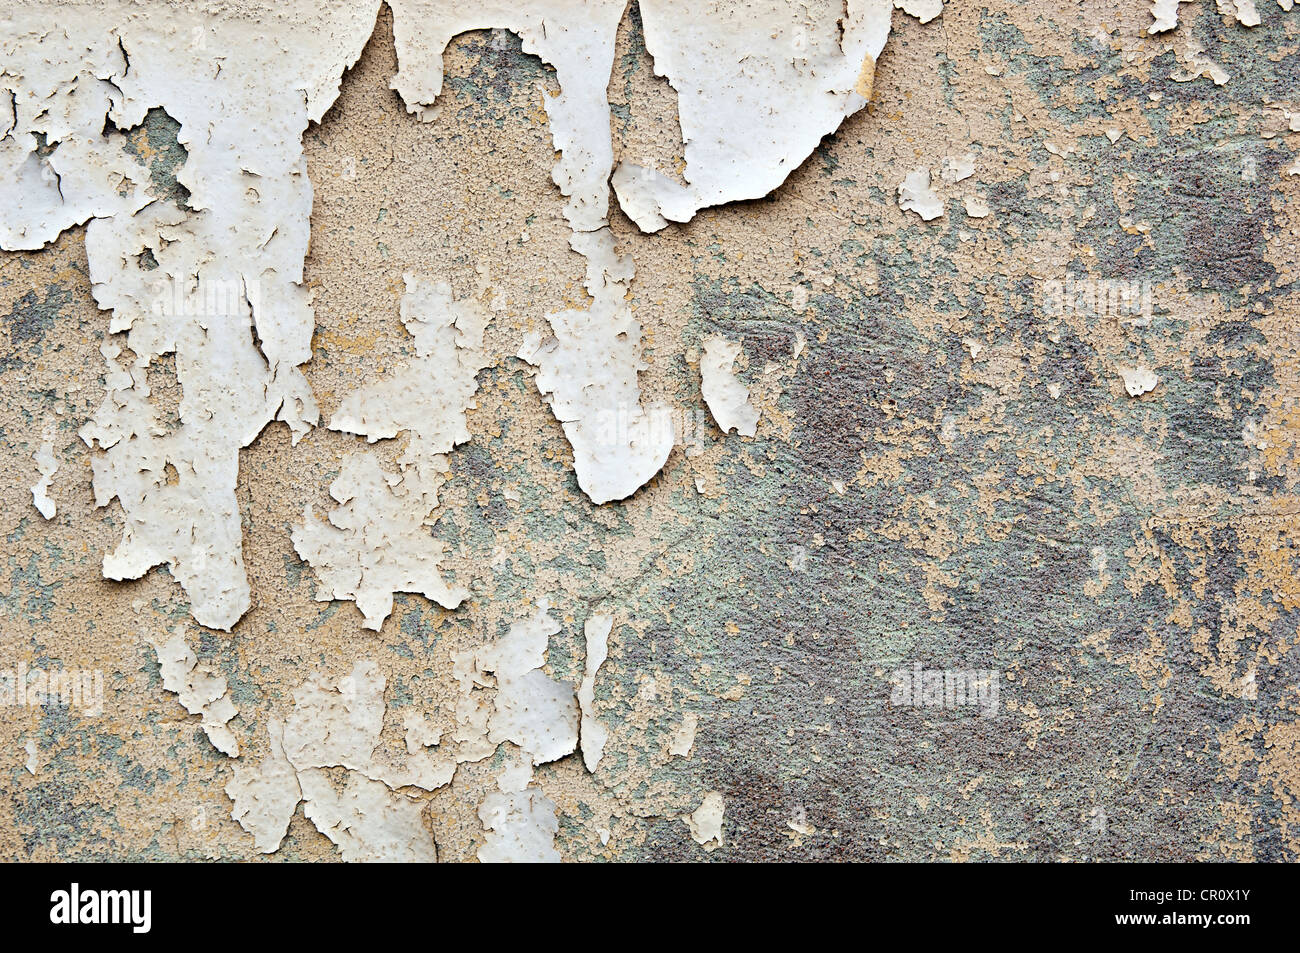 Paint Peeling Off A Concrete Wall Forms Grunge Texture Background Stock Photo Royalty Free